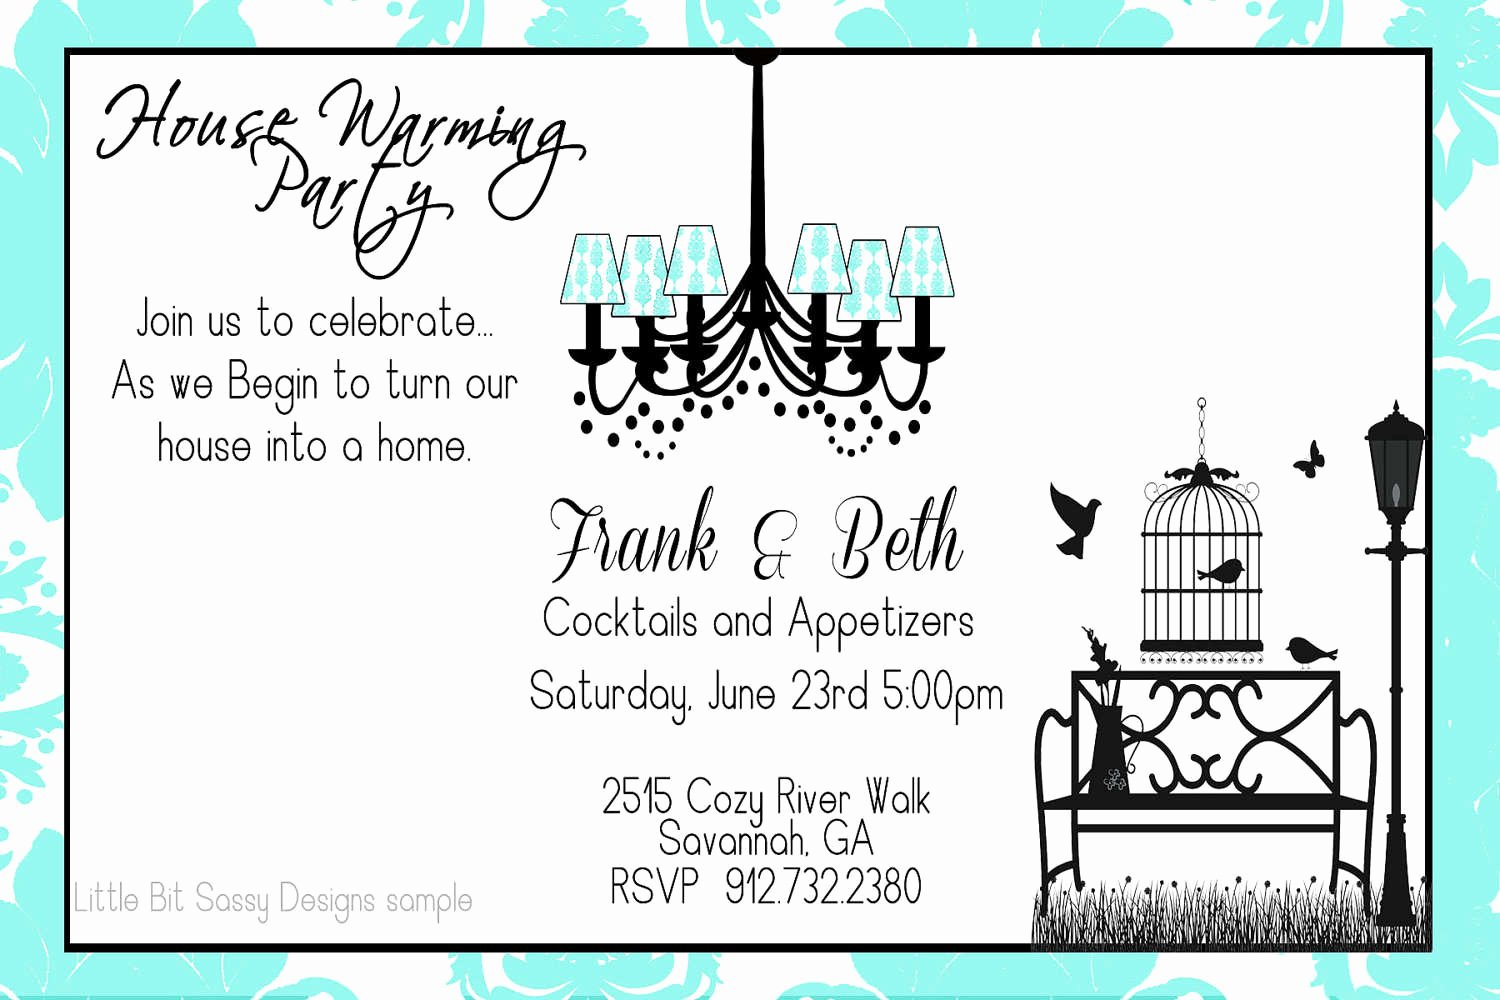 Housewarming Party Invitations Template Inspirational Housewarming Party Invitations Template